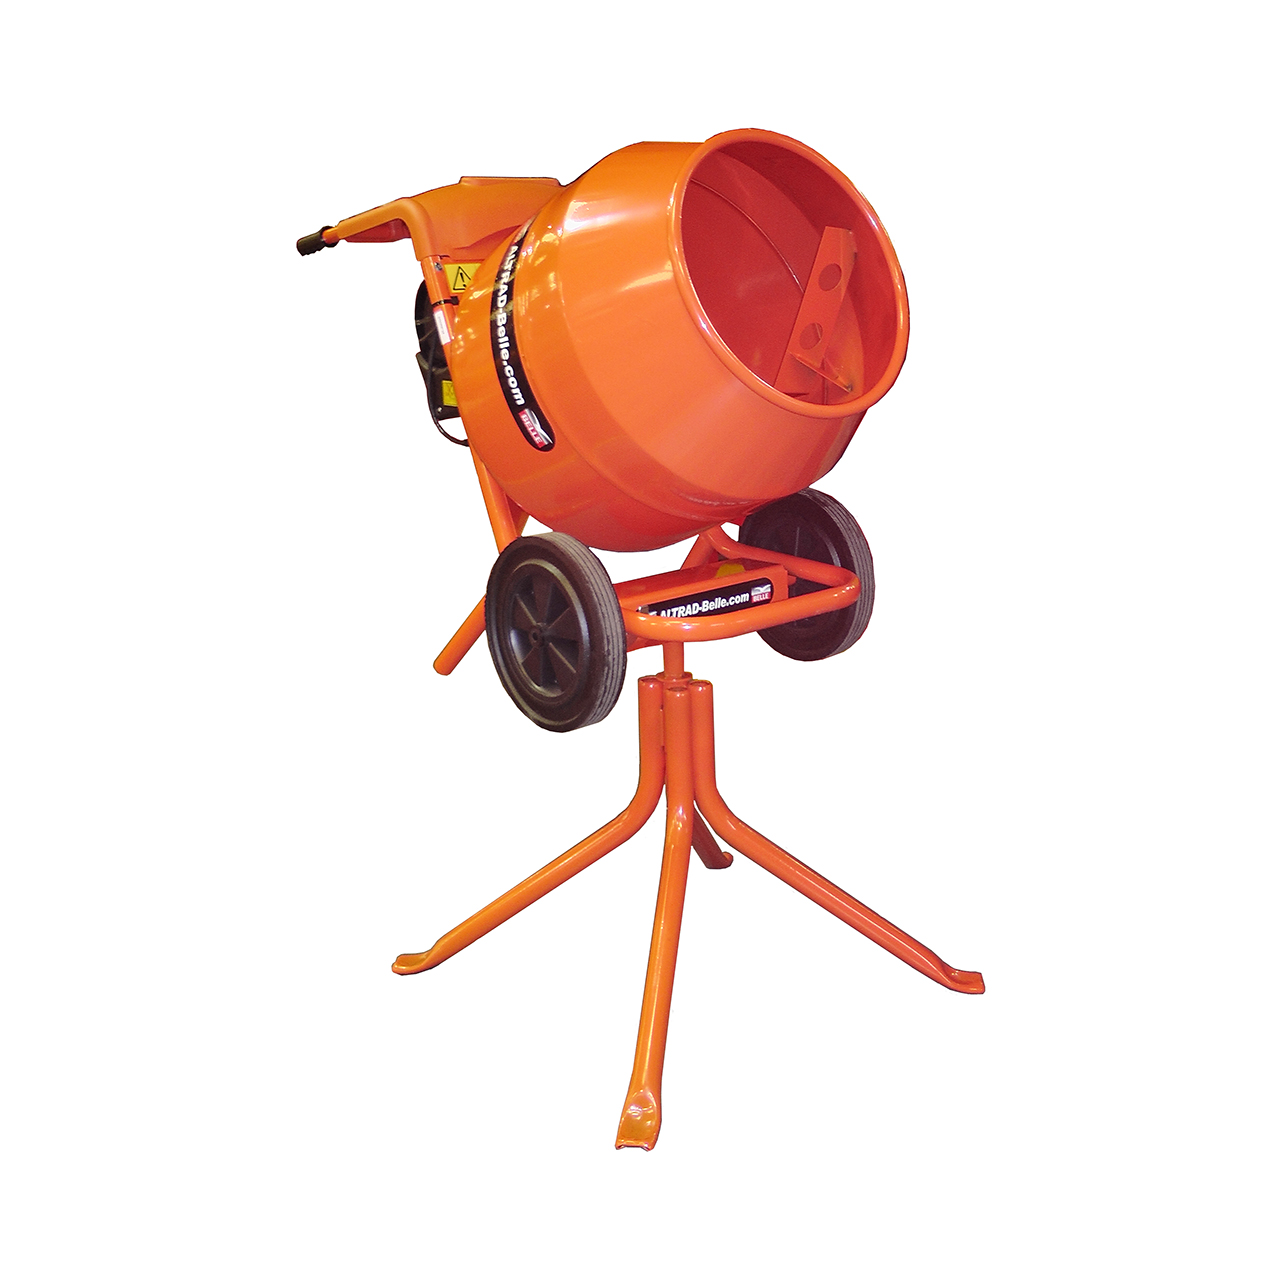 Belle Minimix 150 Concrete Mixer 240V with Stand image 0